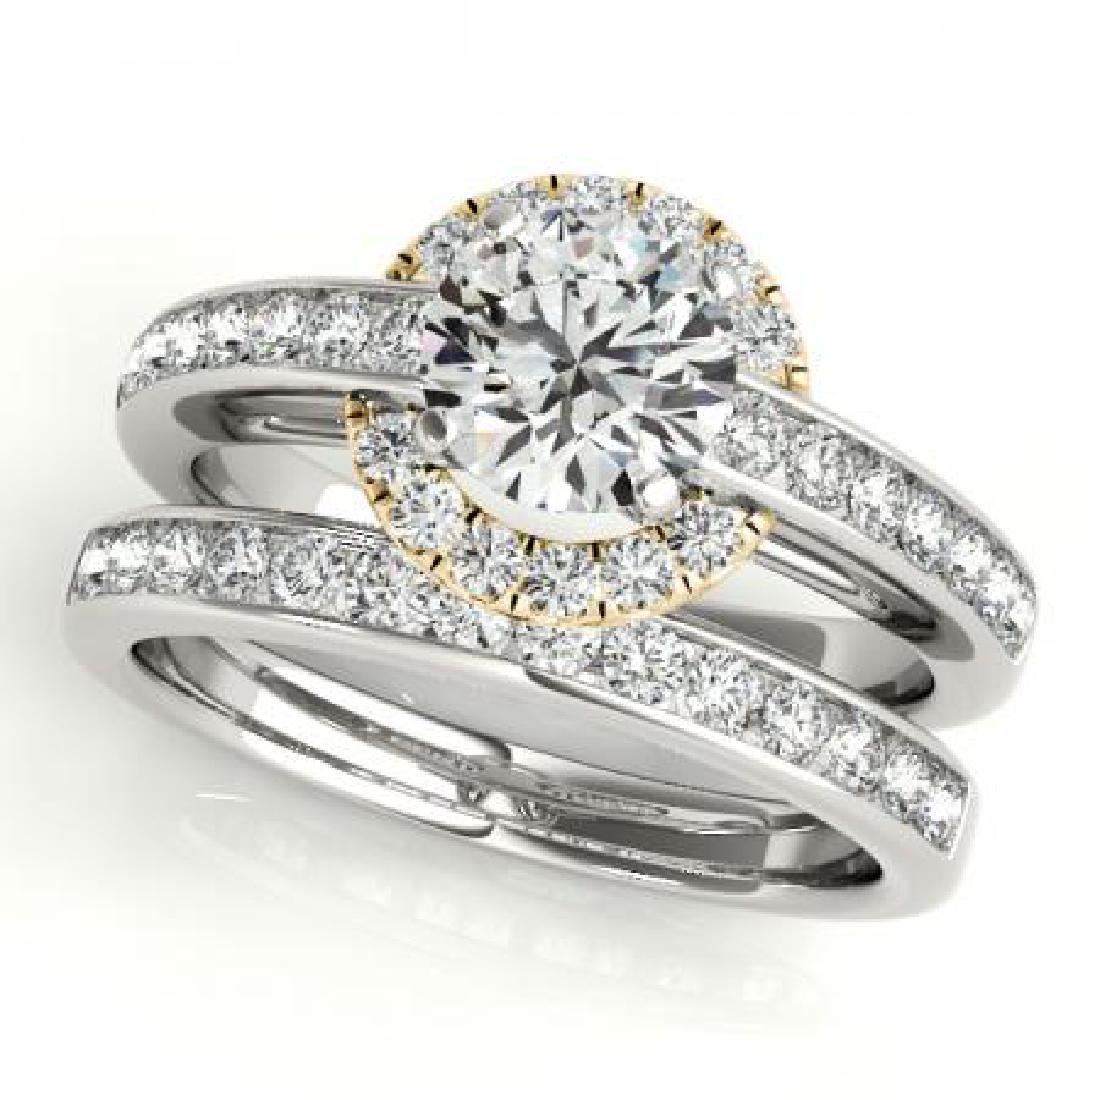 CERTIFIED 14KT TWO TONE GOLD 1.05 CT G-H/VS-SI1 DIAMOND